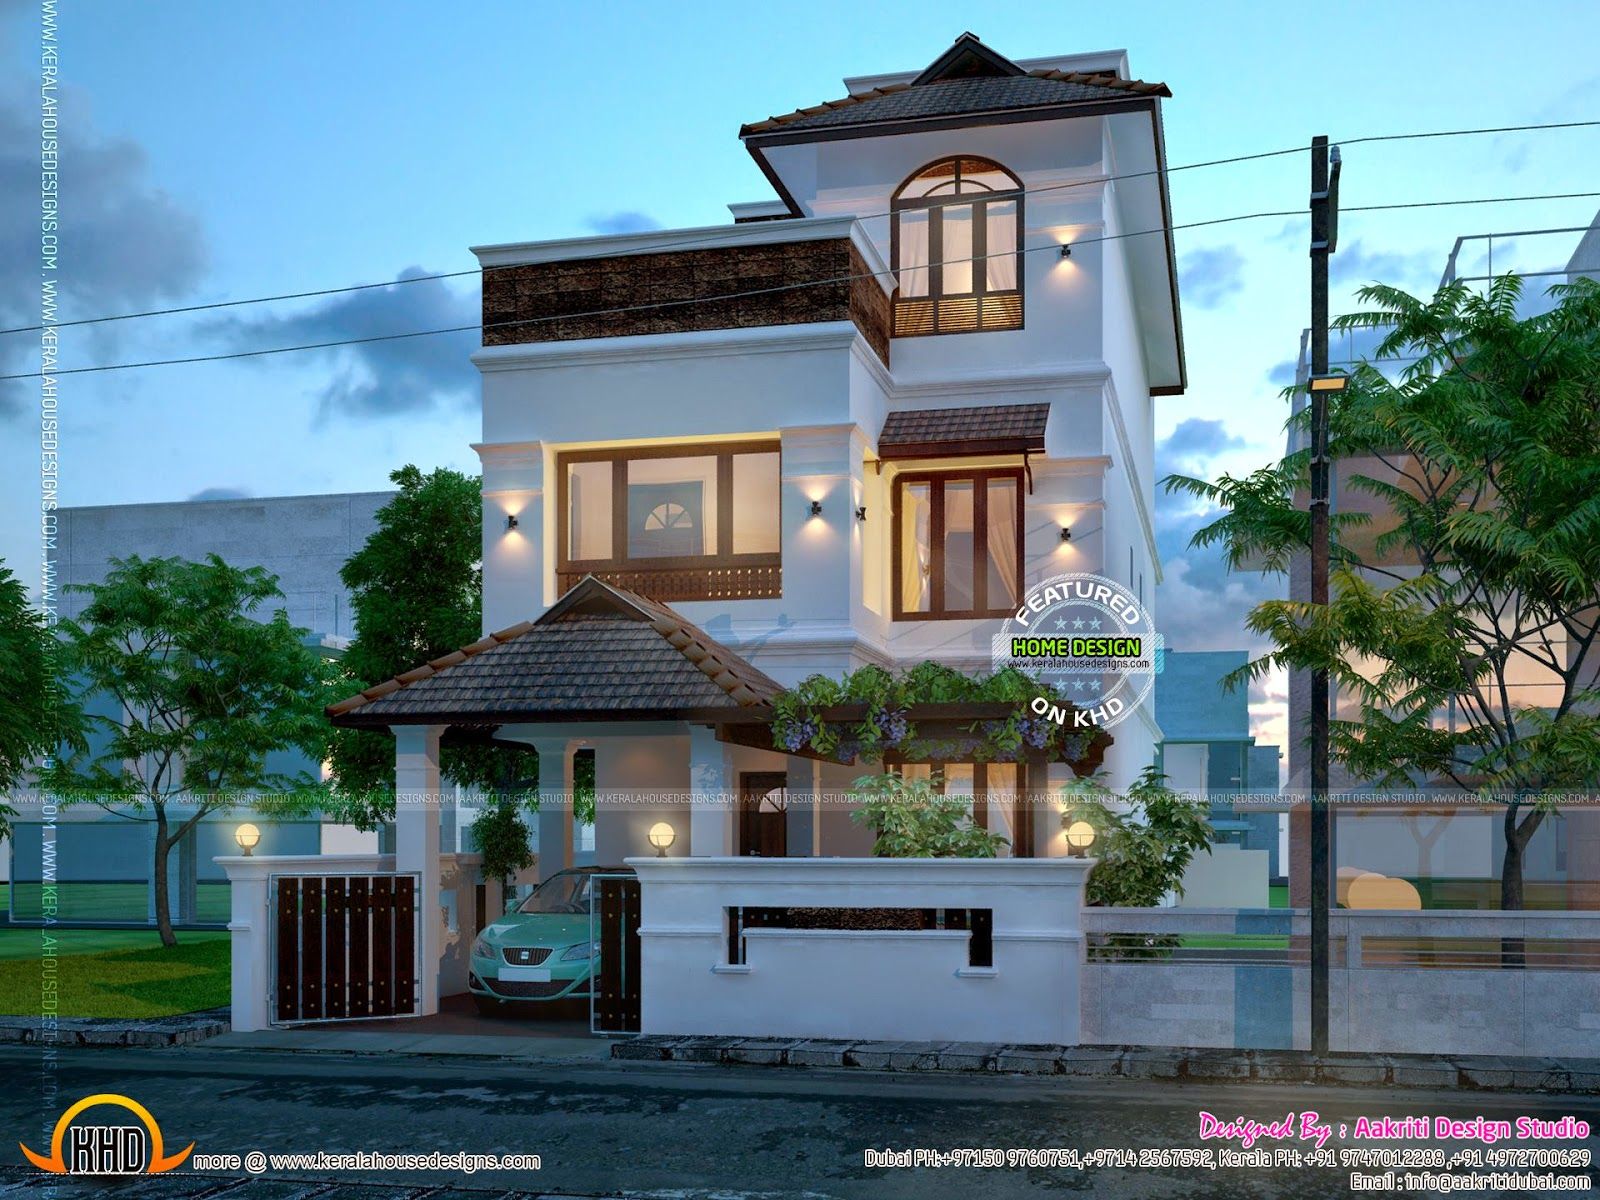 New house design kerala home design and floor plans for Latest building designs and plans